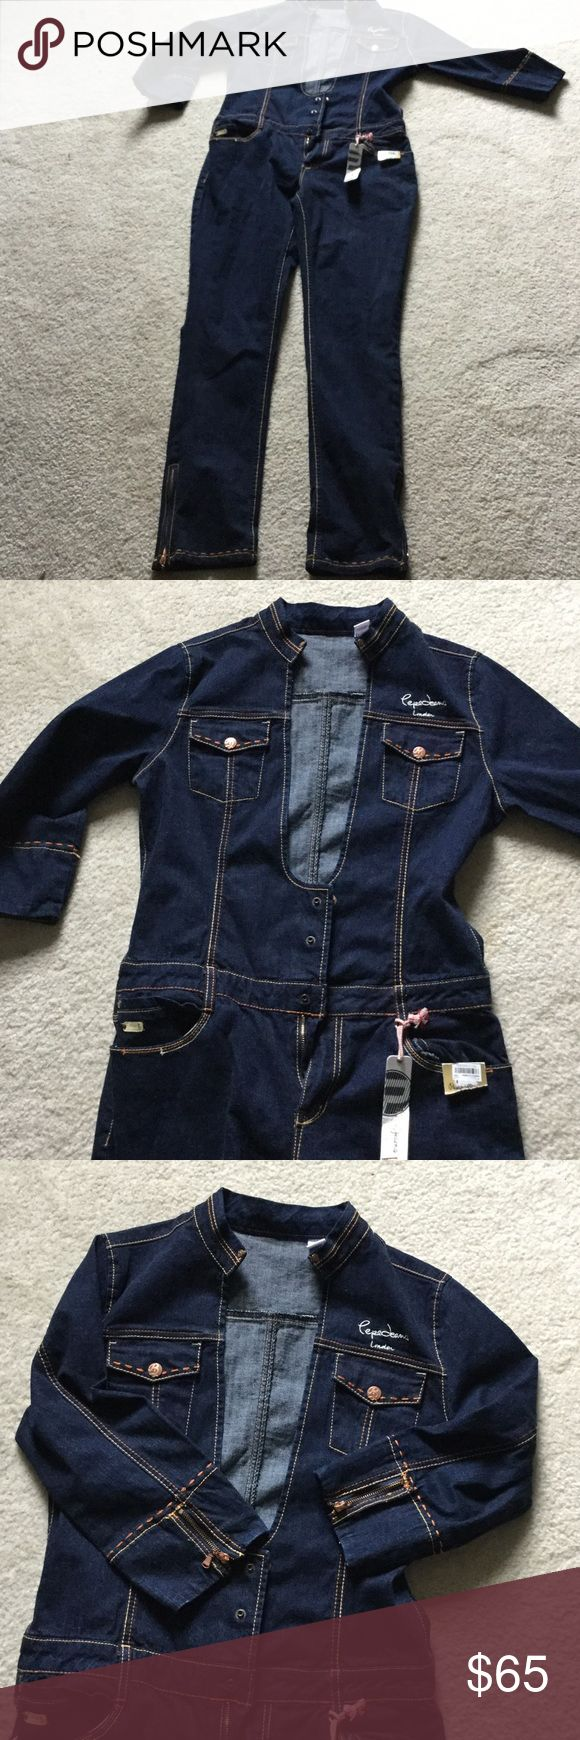 Pepe jean jumper Brand new Pepe jean Jumper Pepe Jeans Jeans Overalls